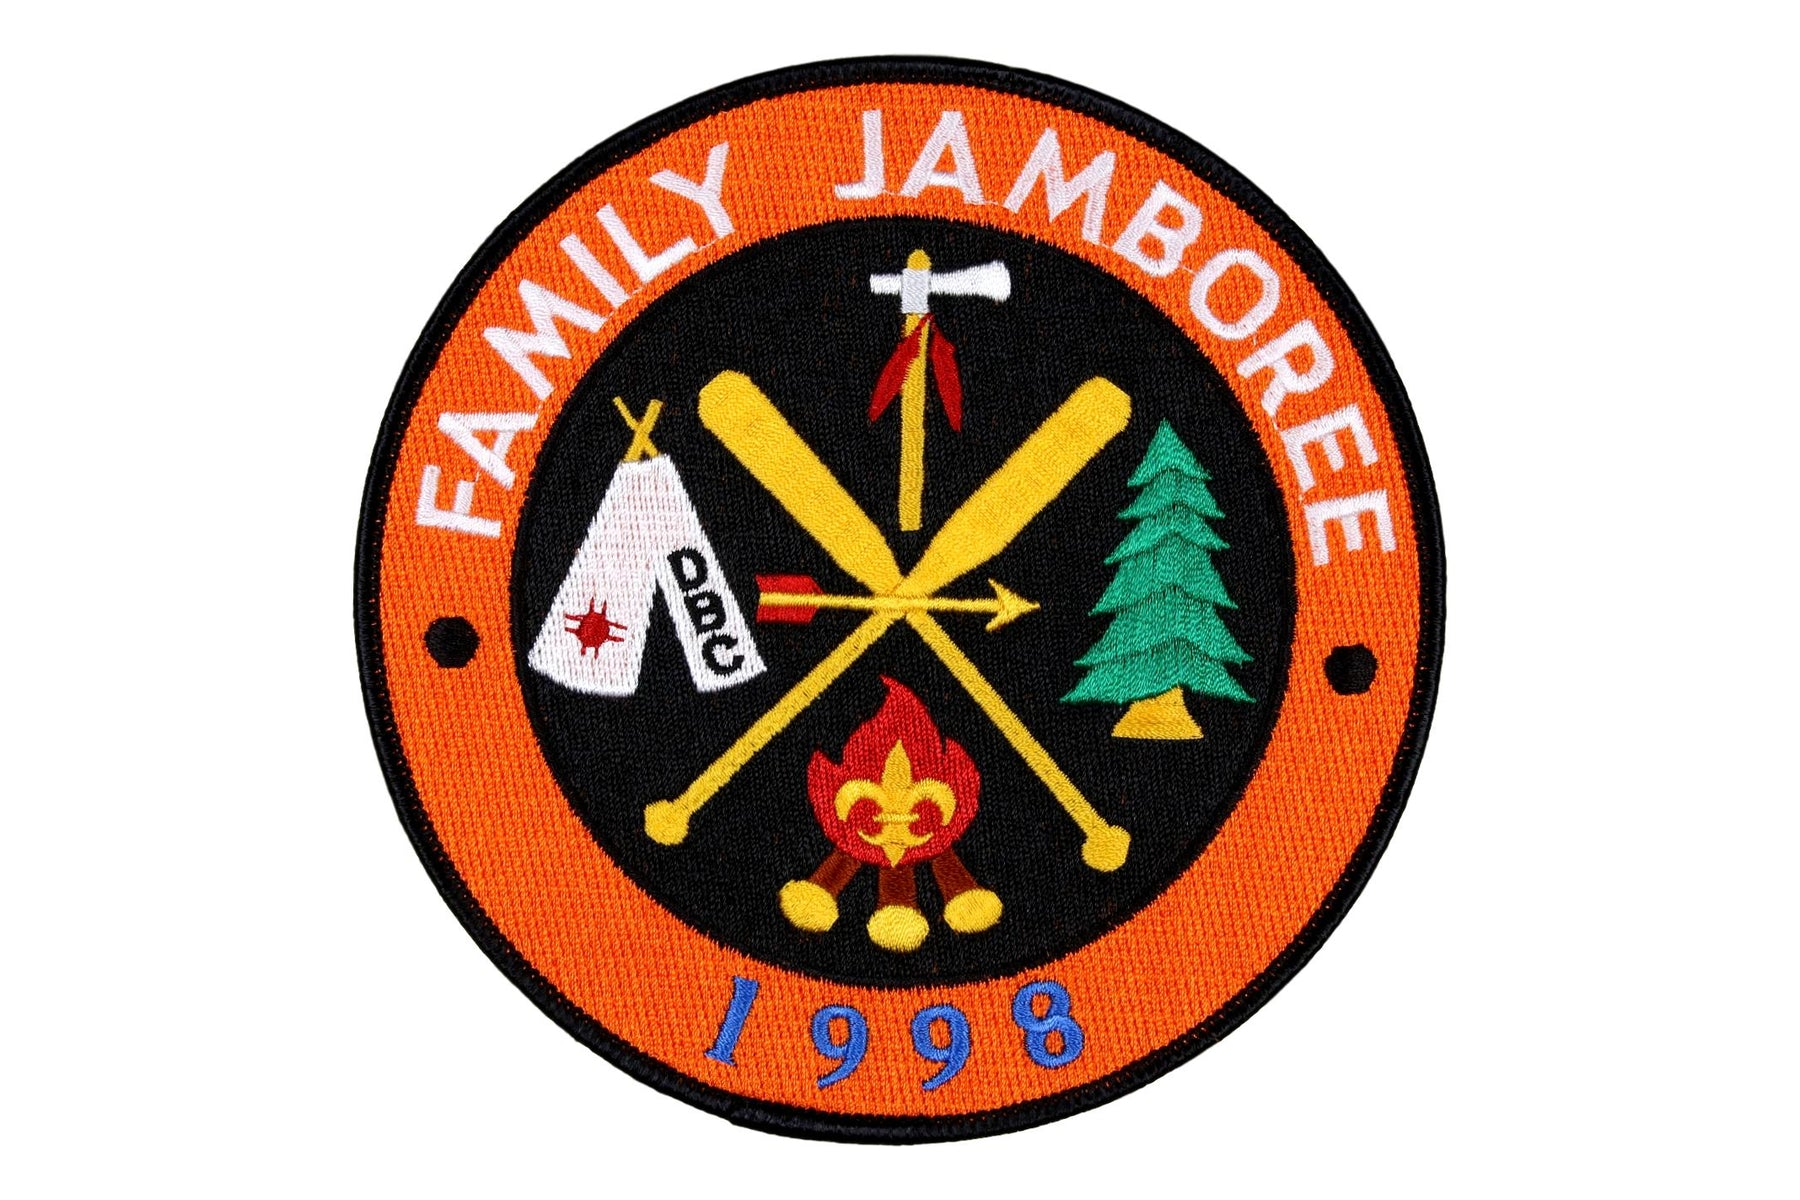 Family Jamboree 1998 Jacket Patch